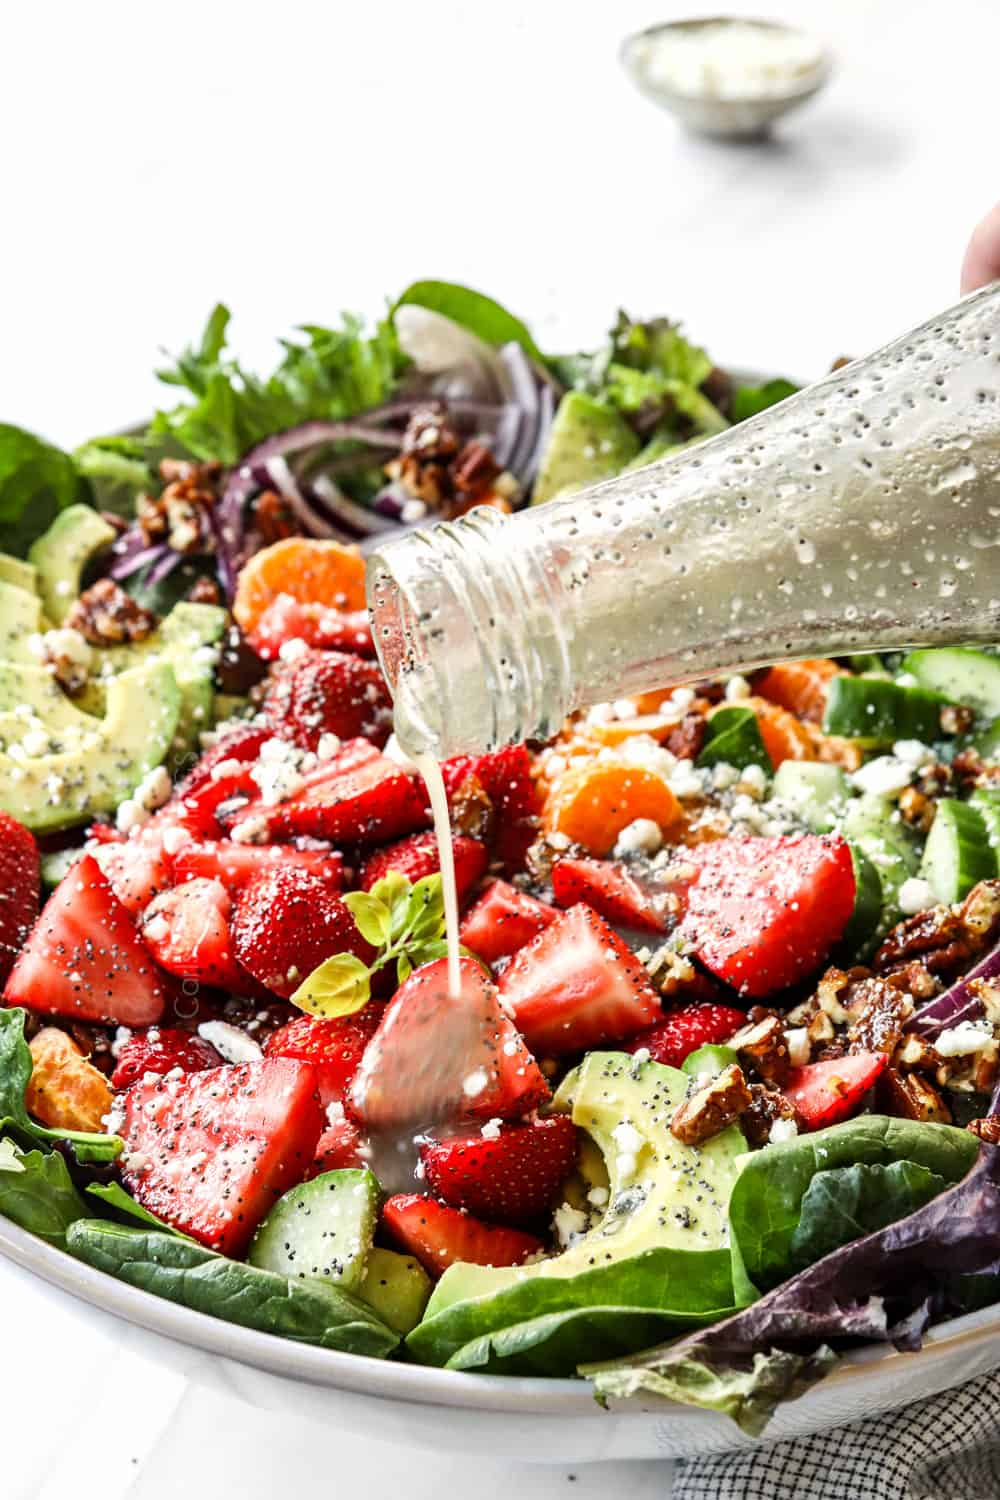 showing how to make strawberry spinach salad recipe by dressing with poppy seed vinaigrette